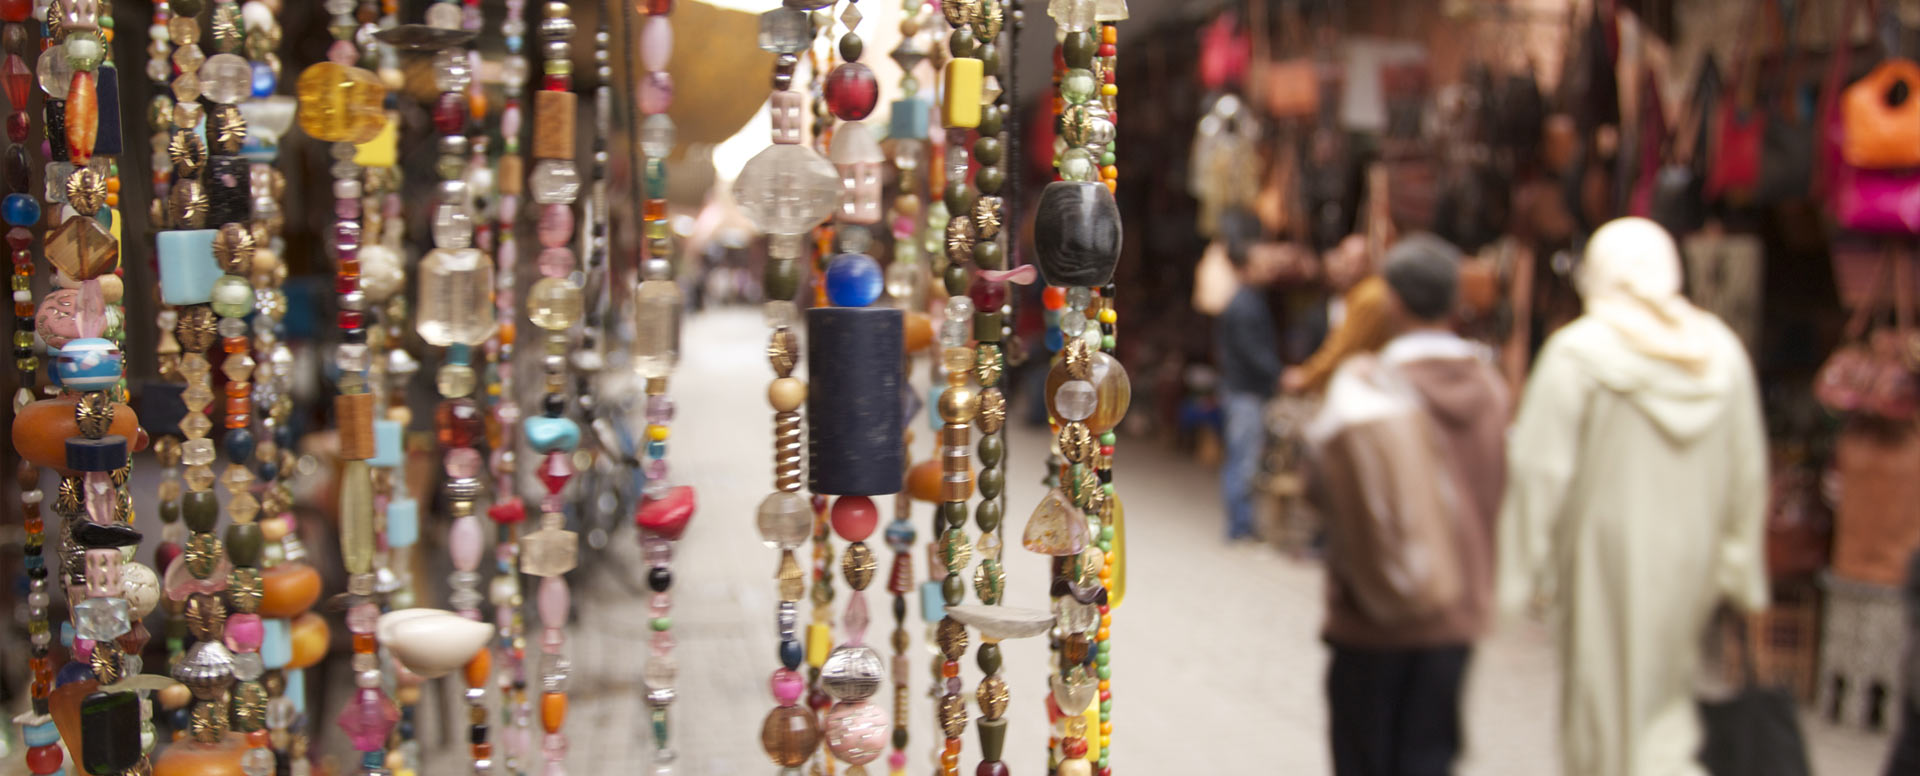 4. Stroll through the Medina and shop in the souks - Marrakech